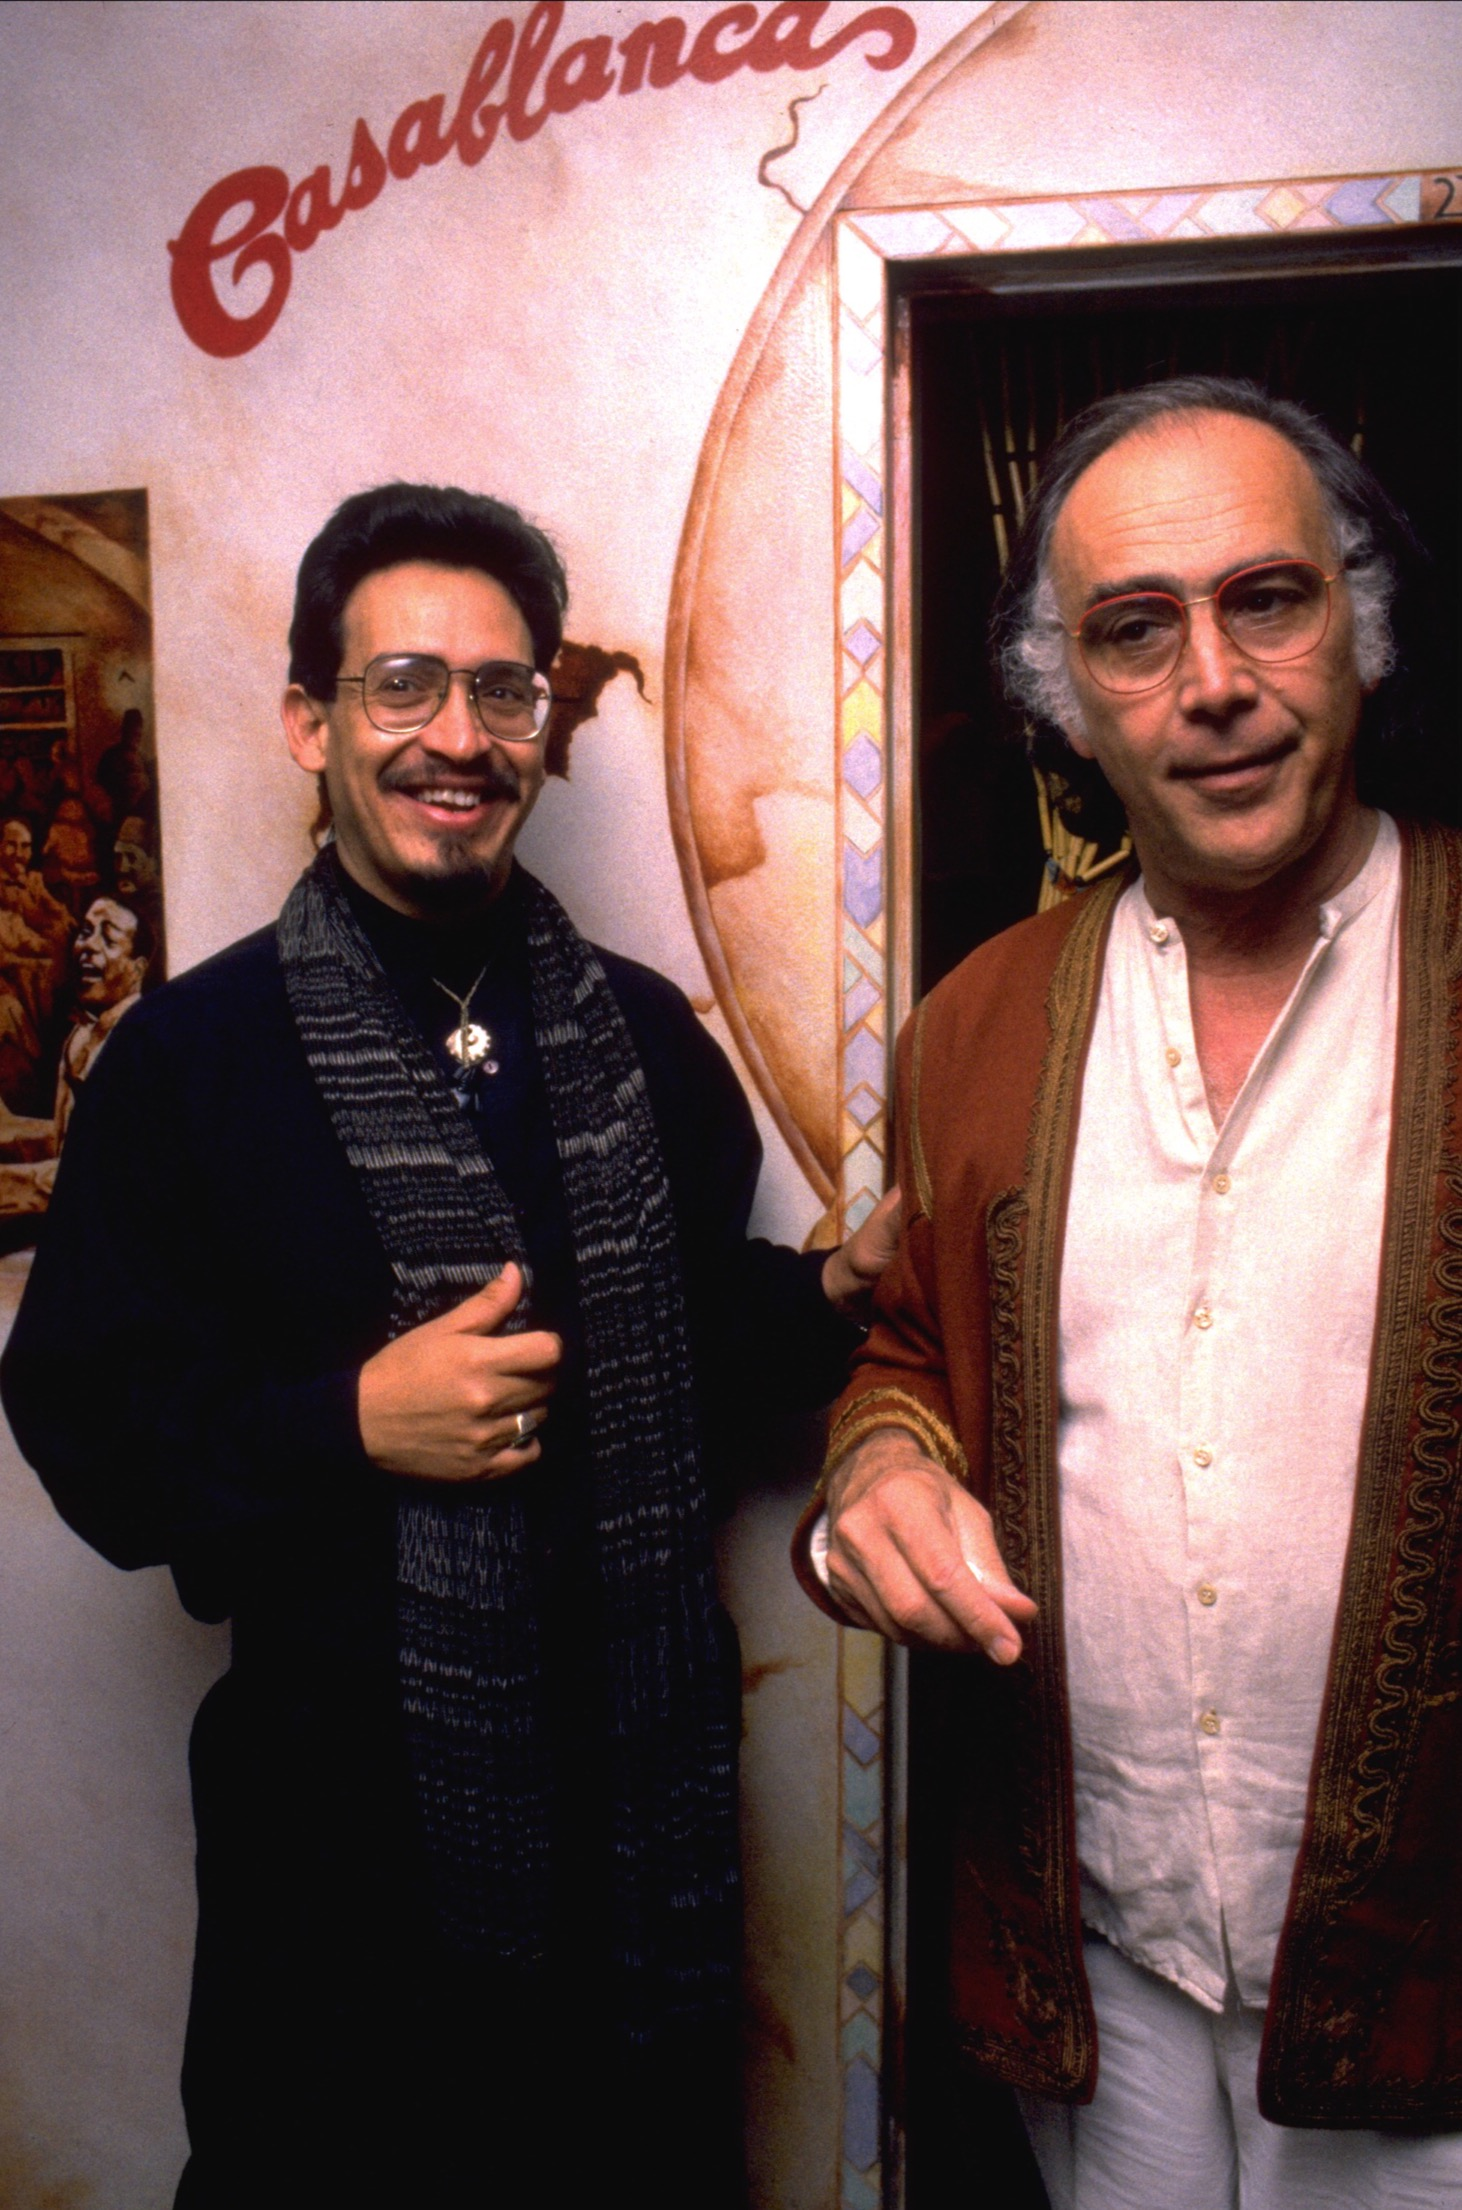 Montoya and Coppola. Photo courtesy of Emmanuel Montoya.